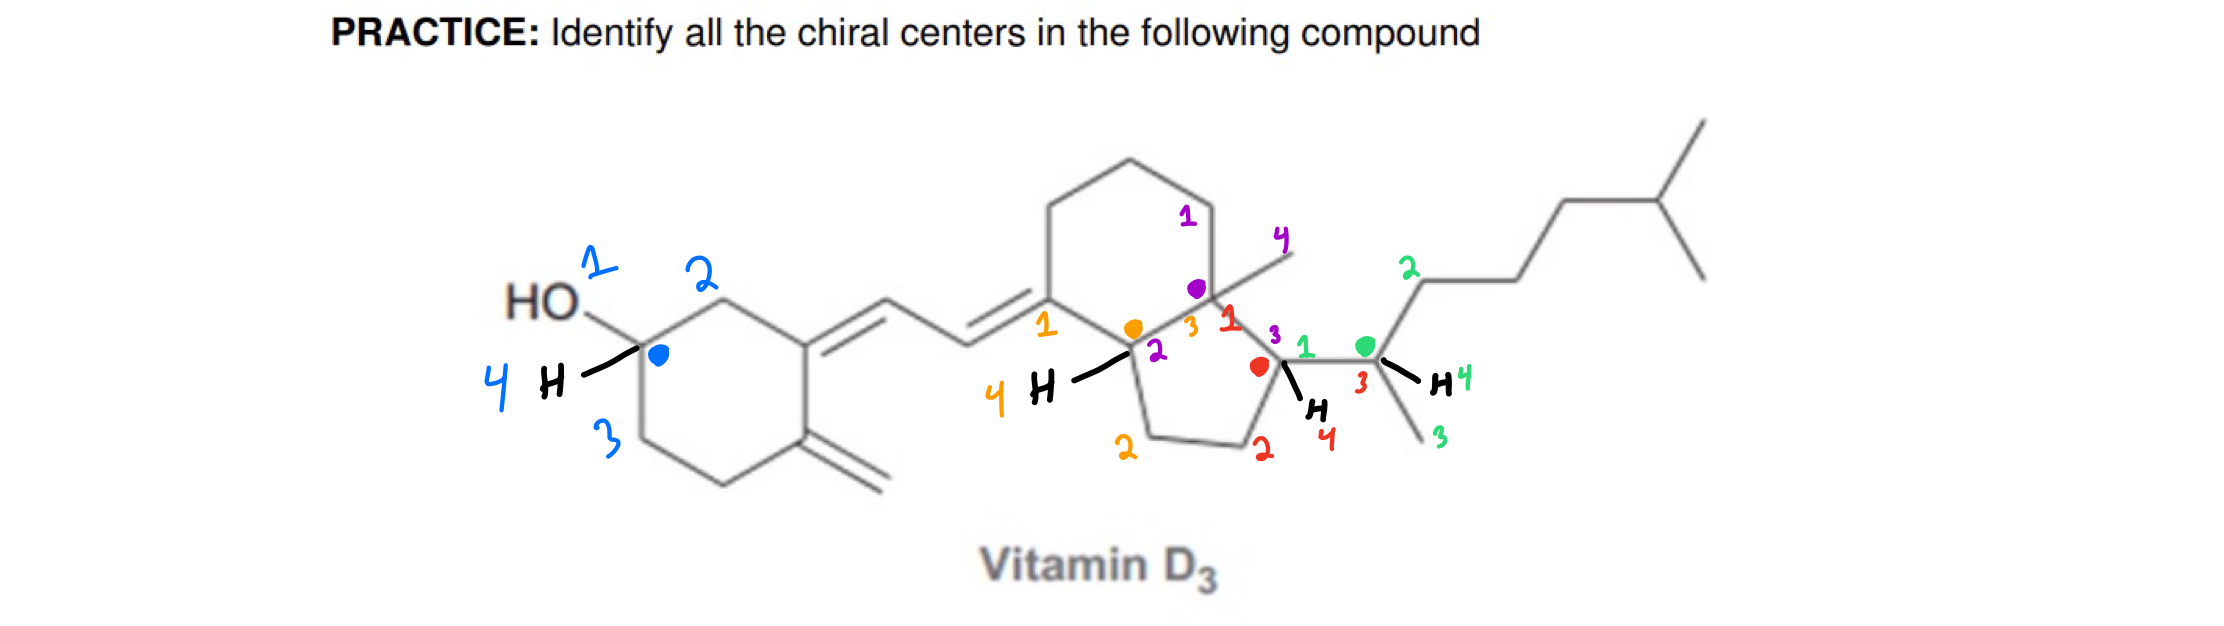 Vitamin-D3-labeled